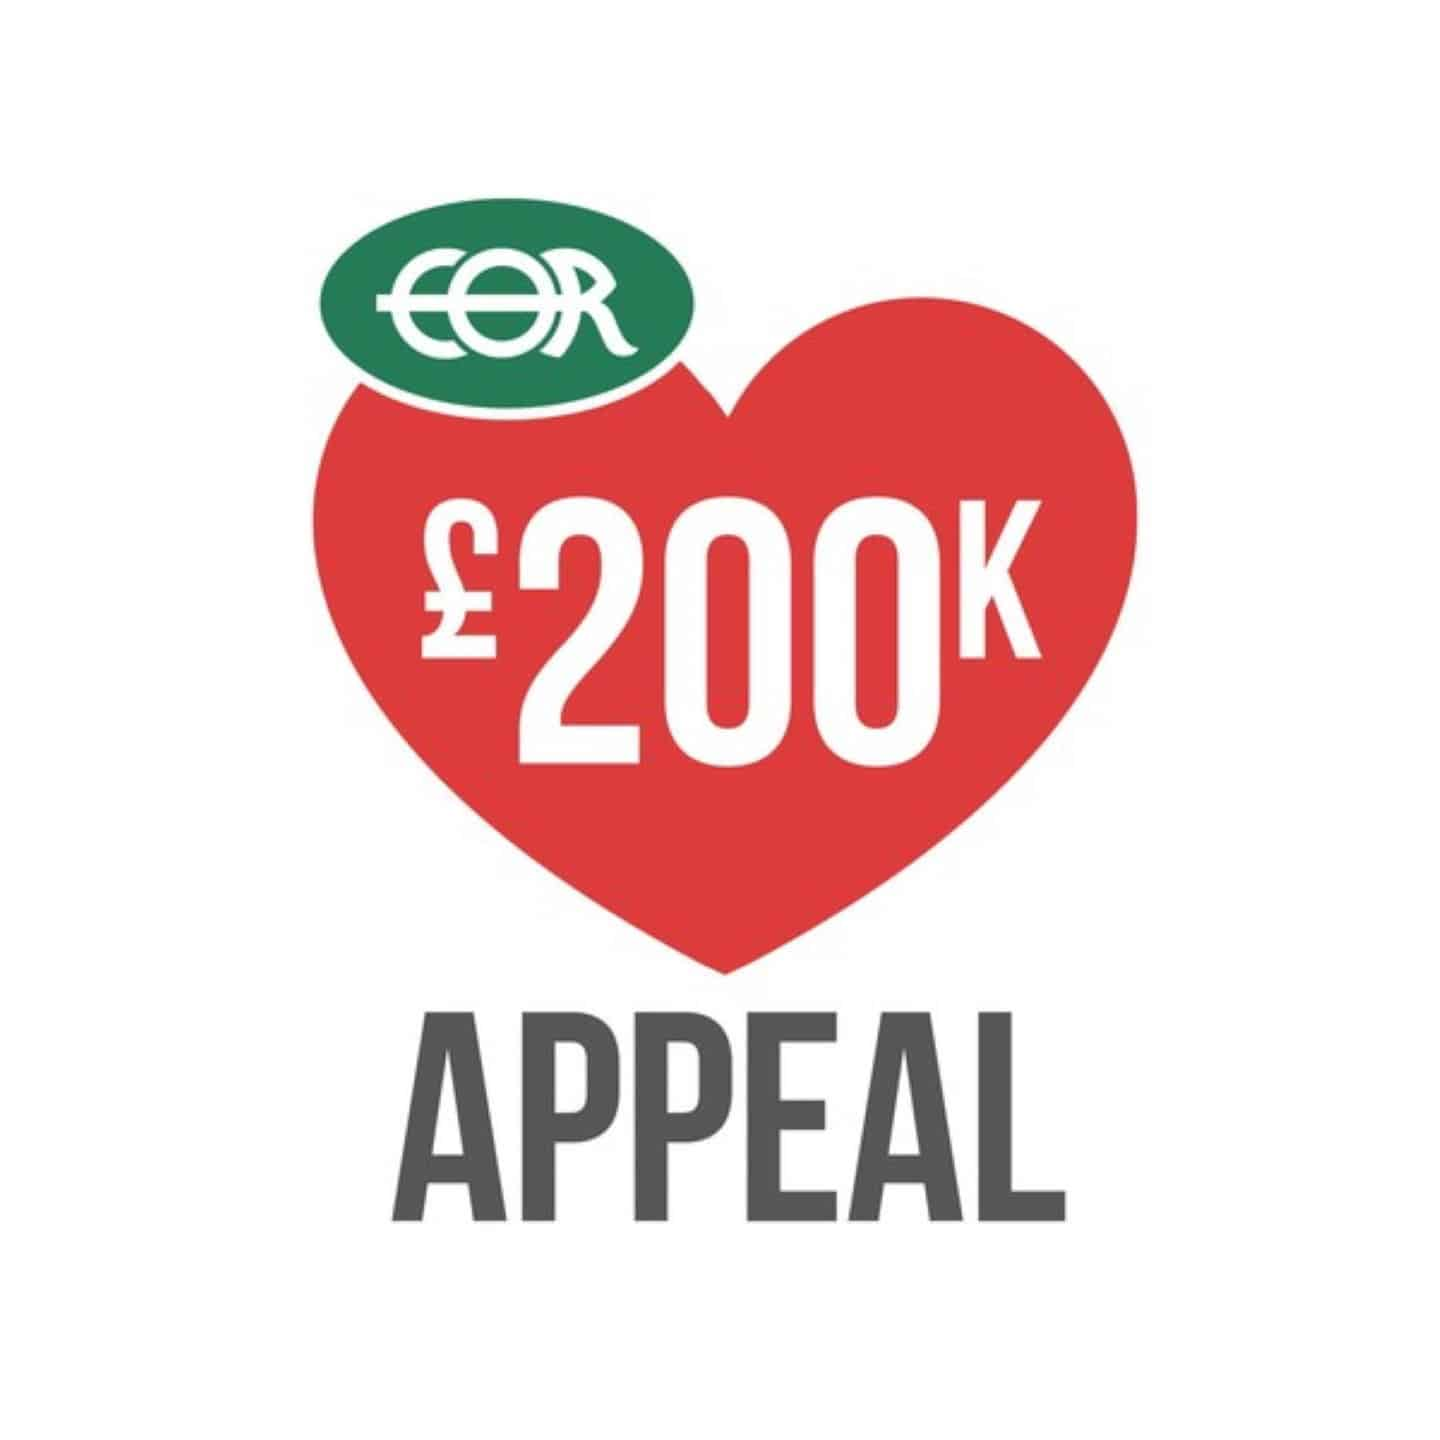 Epping Ongar Railway £200K Appeal // Credit EOR